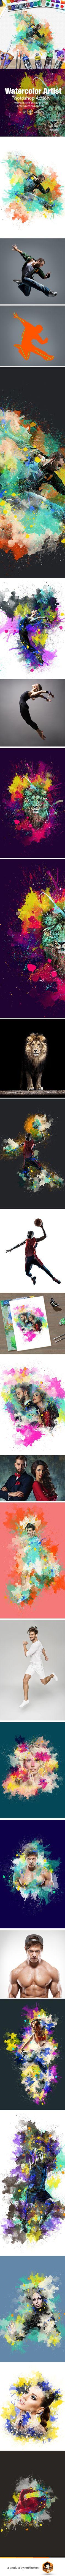 Watercolor Artist Photoshop Action — Photoshop ATN #action #digitalart • Download ➝ https://graphicriver.net/item/watercolor-artist-photoshop-action/20027897?ref=pxcr